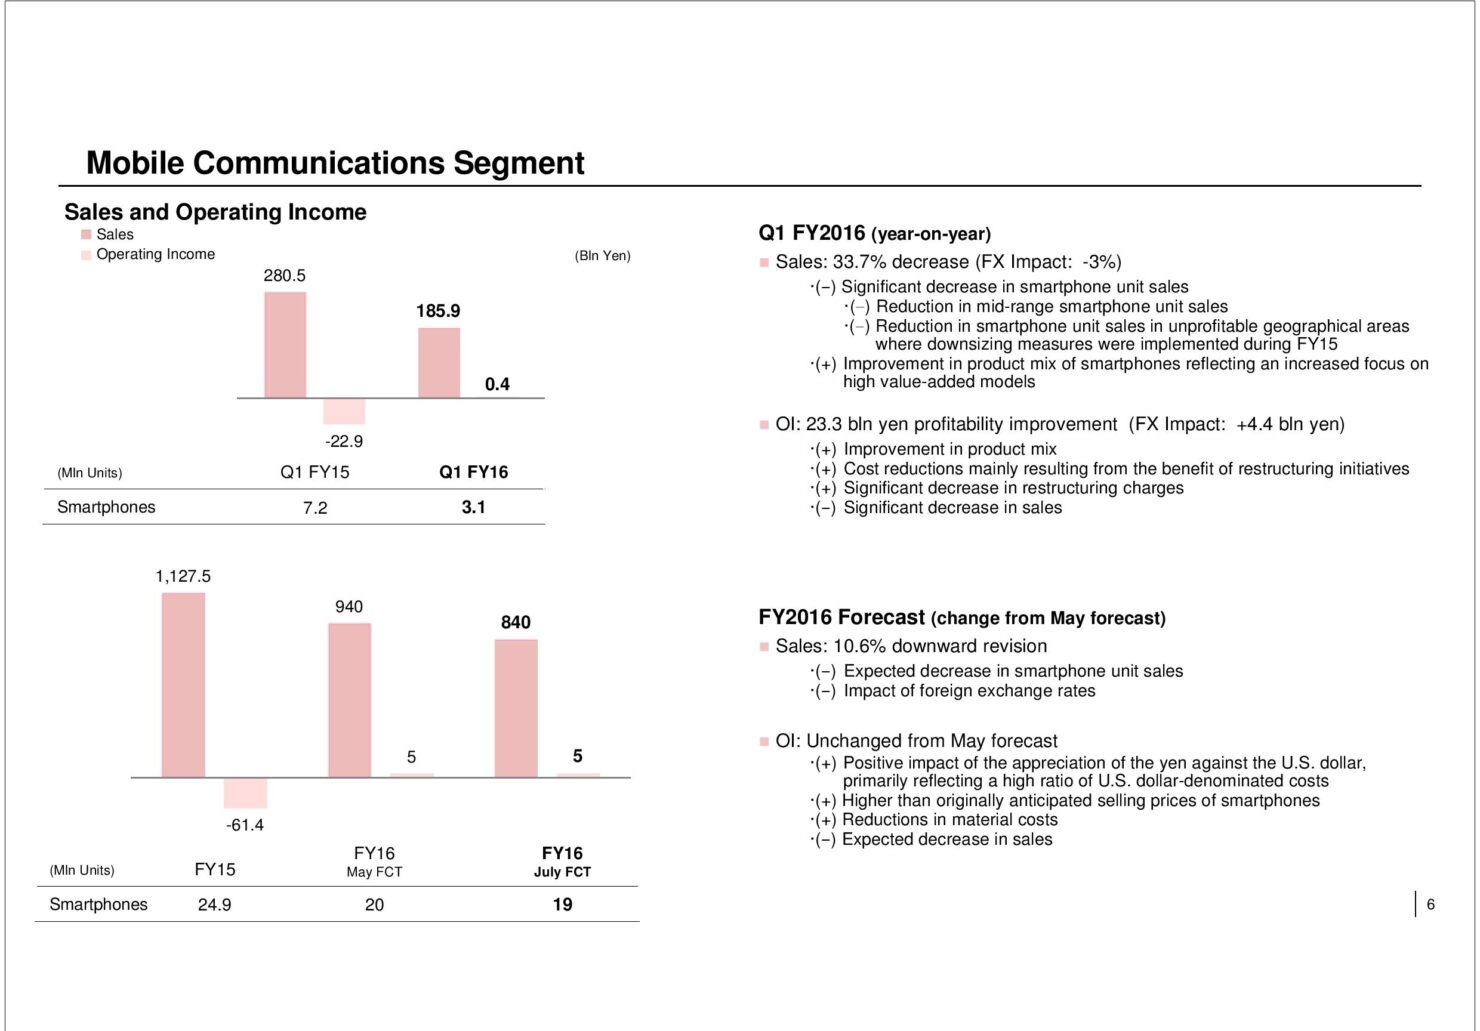 16q1_sonypre-page-004-copy